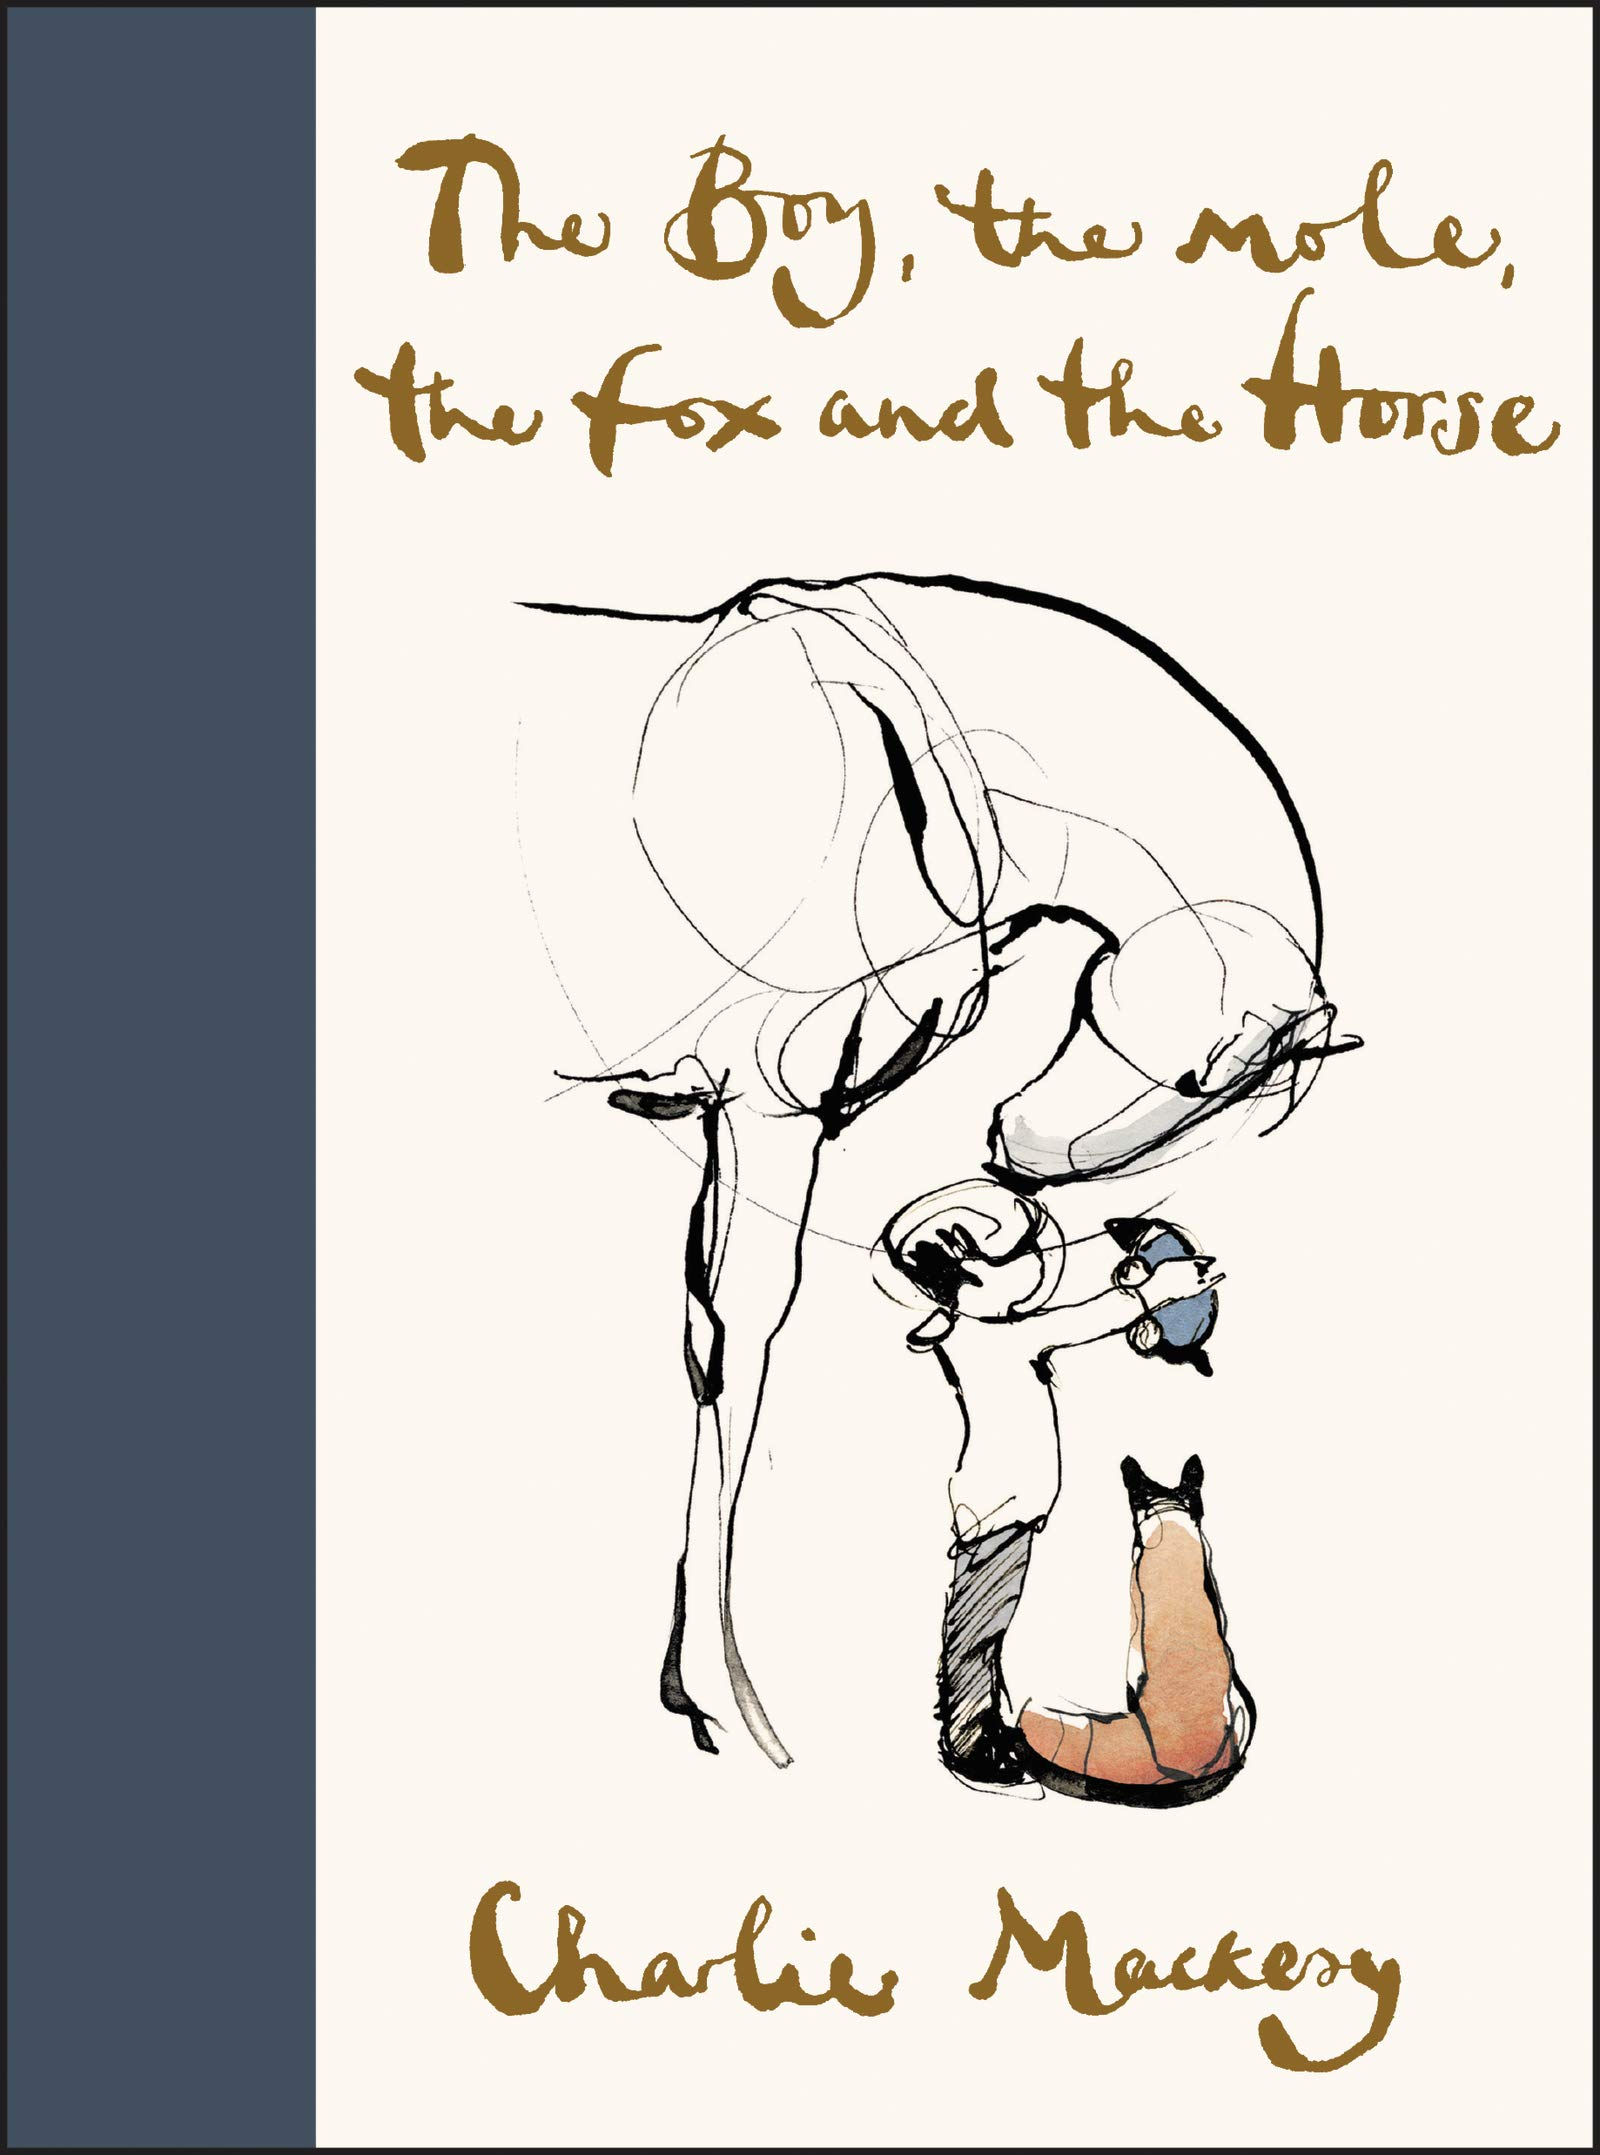 The Boy the Mole the Fox and the house by Charlie Mackesy